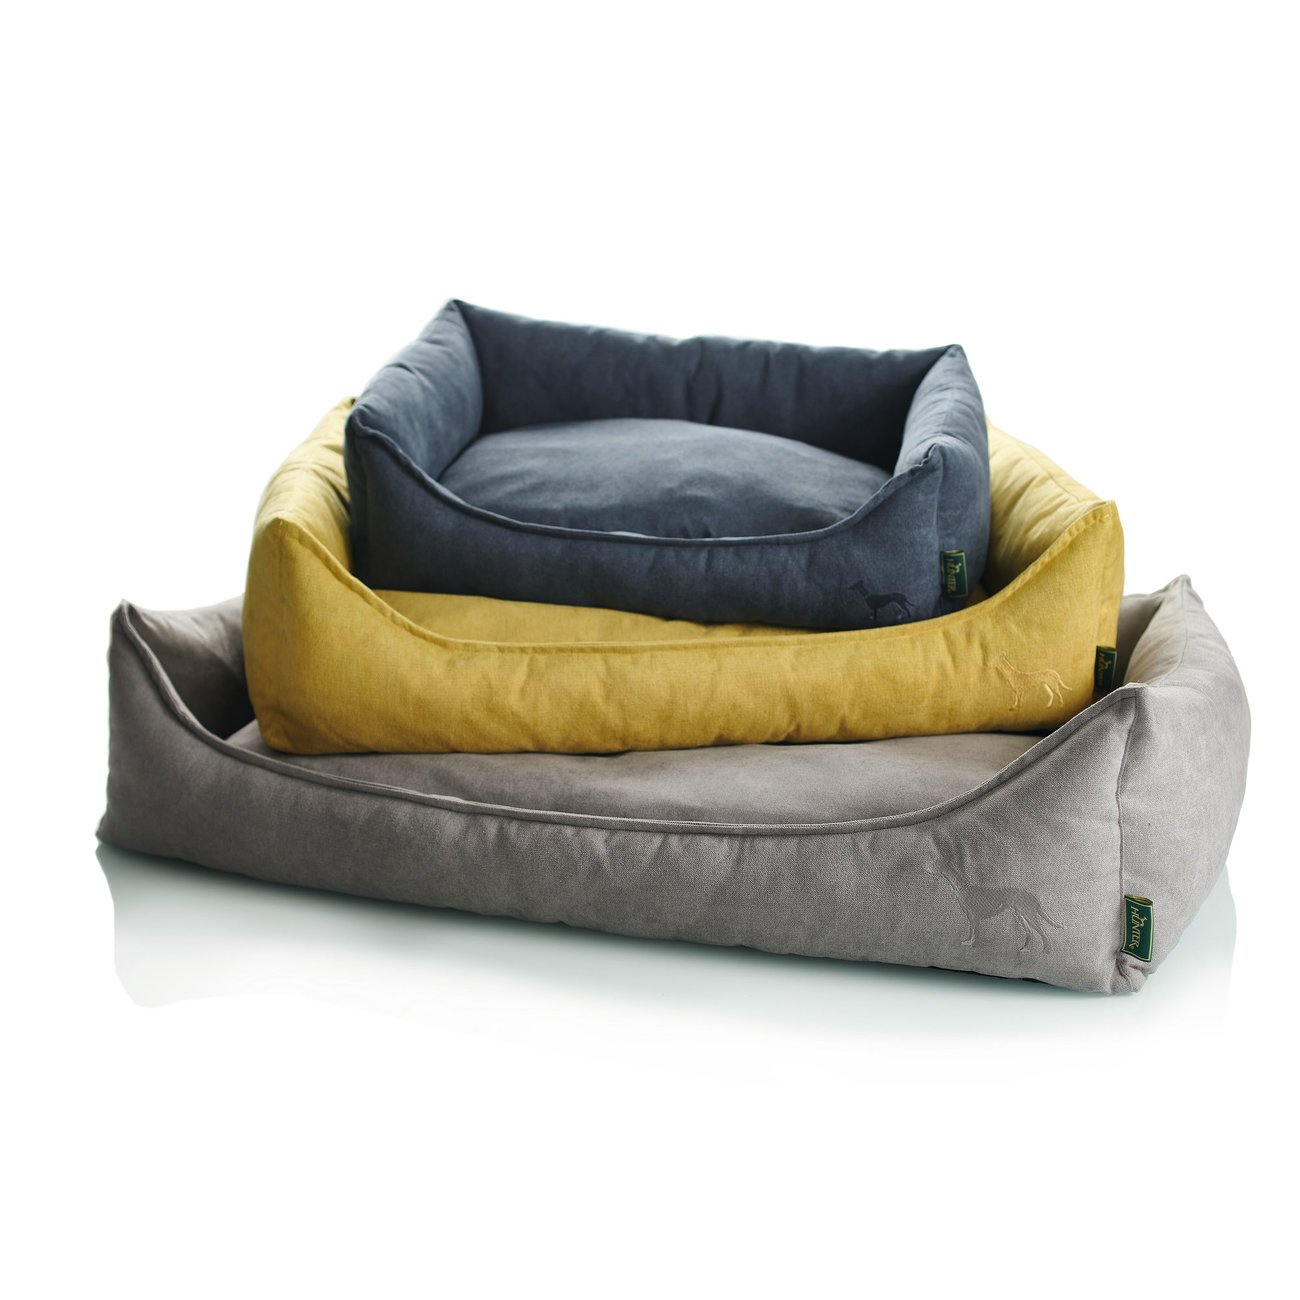 Hunter Hundesofa Eiby